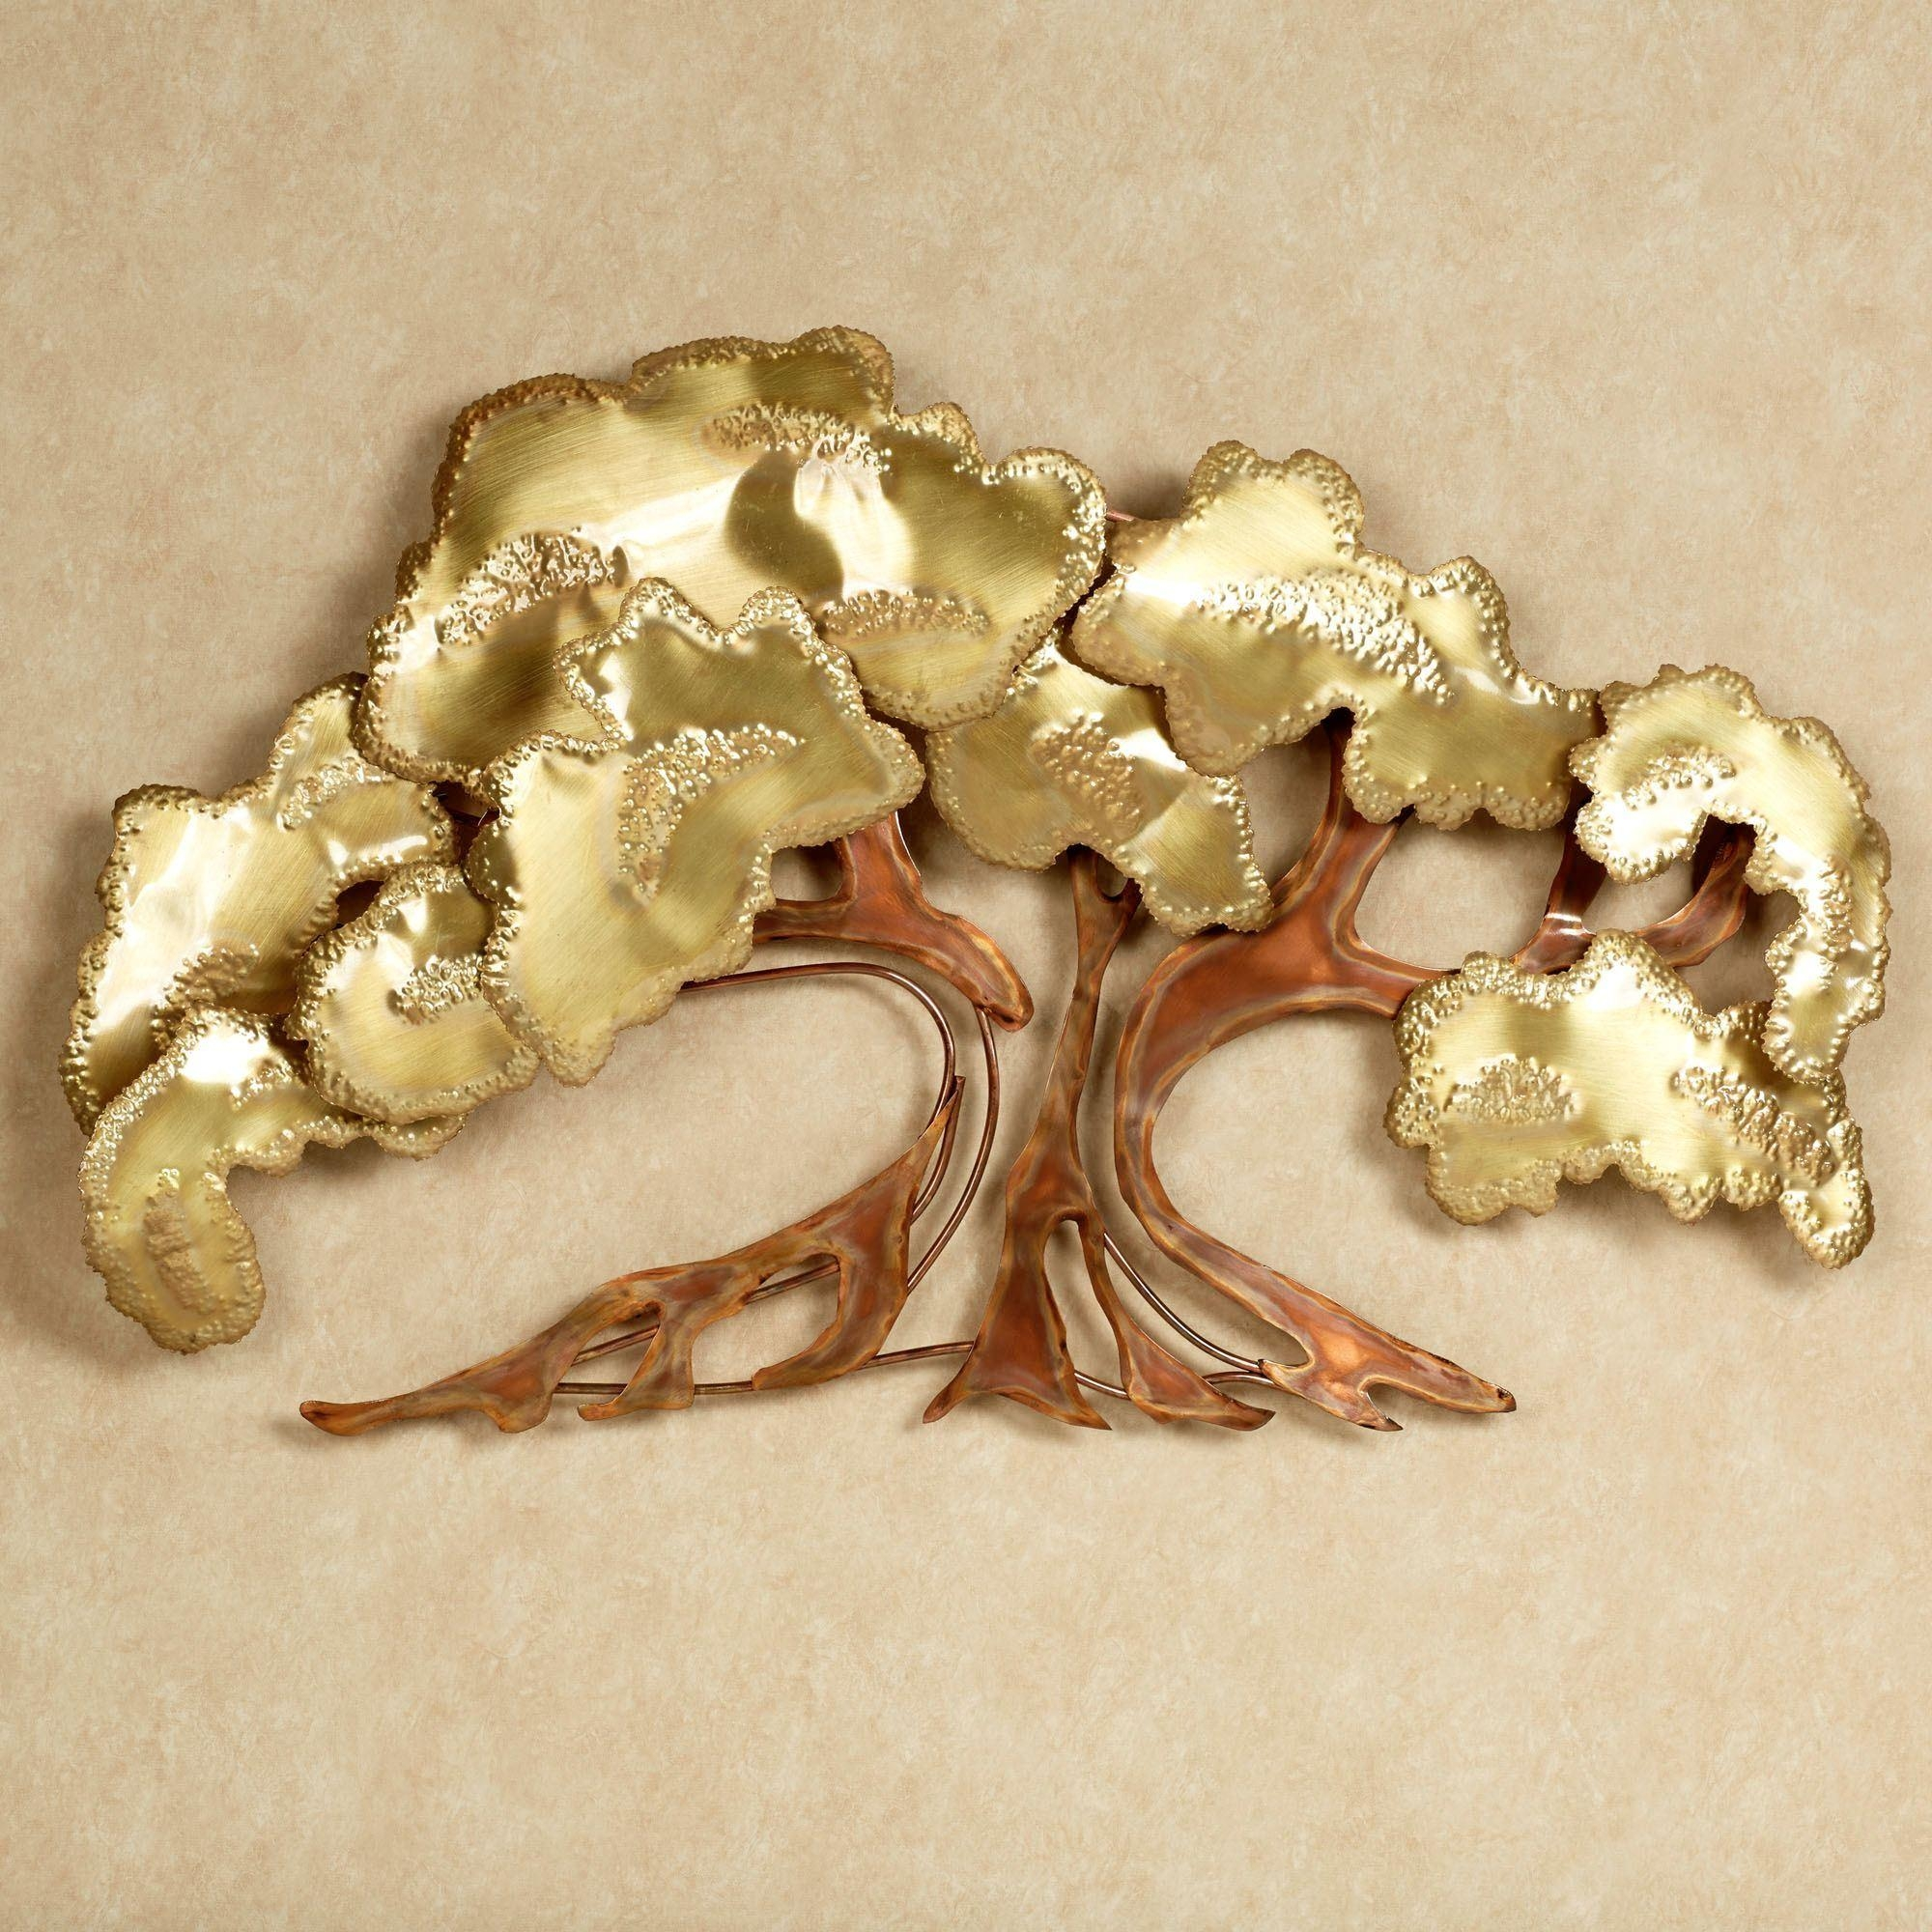 Zen Tree Metal Wall Sculpture Intended For Metal Tree Wall Art Sculpture (Photo 11 of 20)